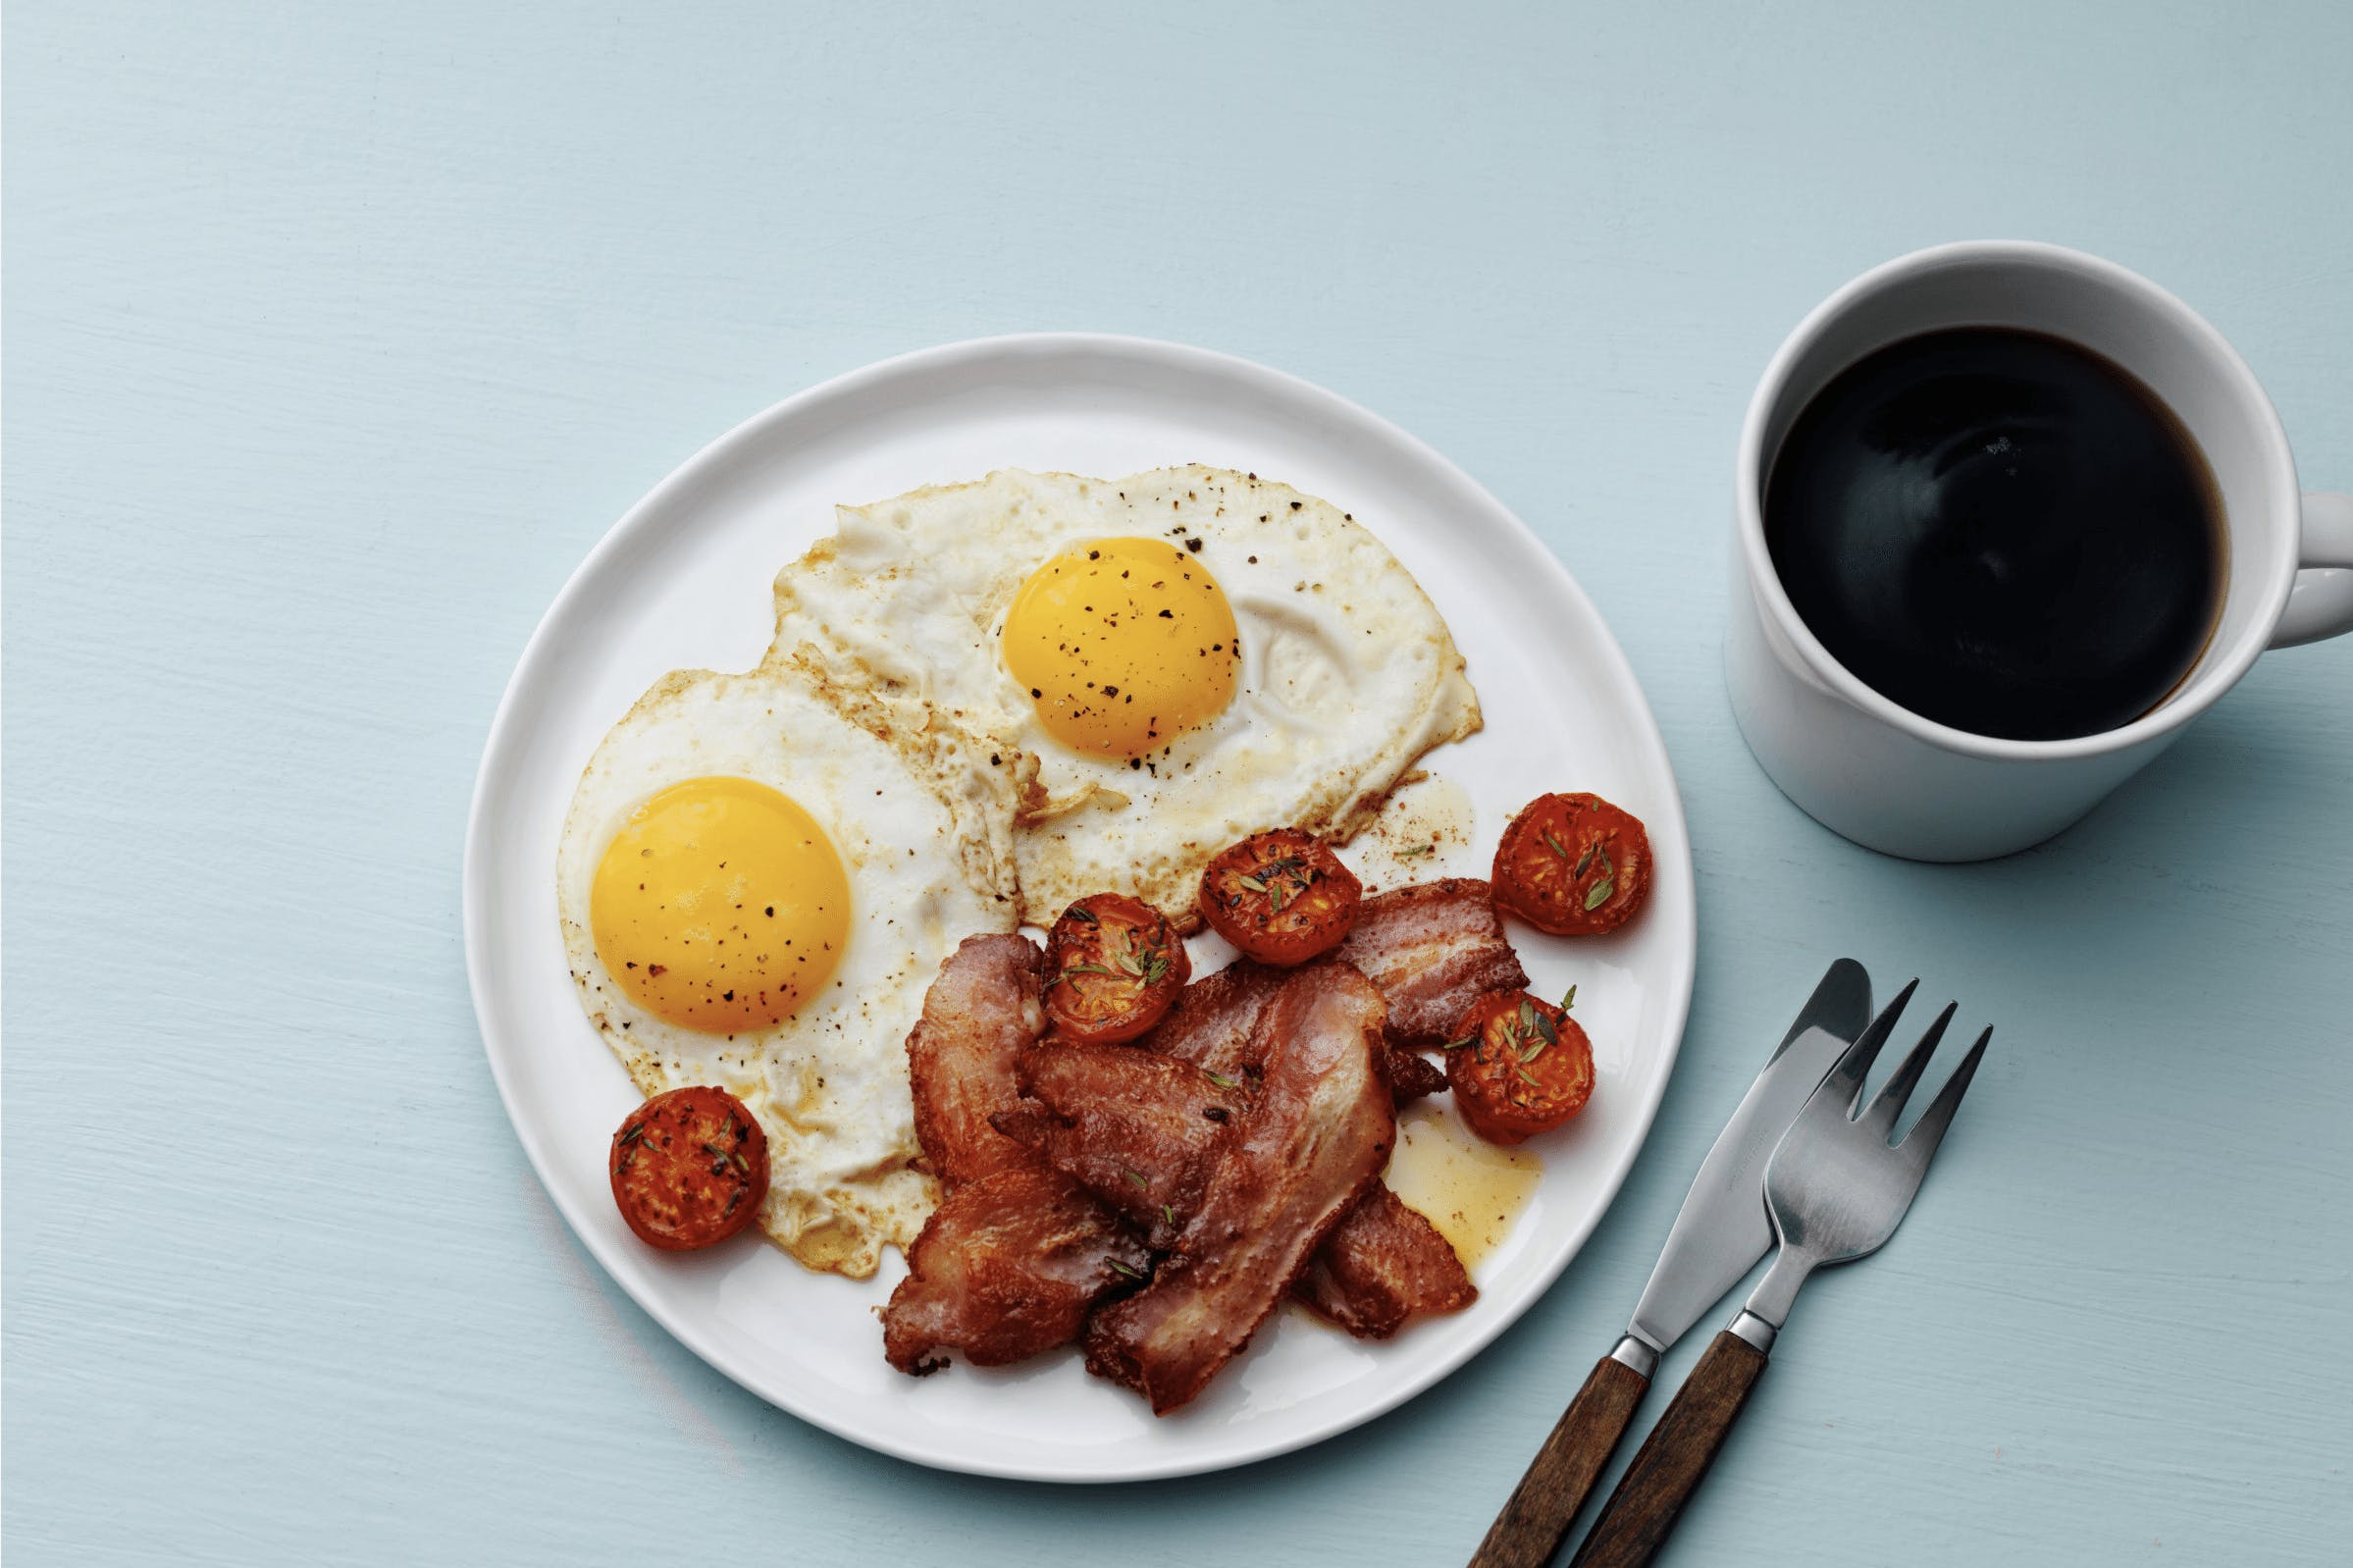 Best of 2015 WINNER: Classic Bacon and Eggs